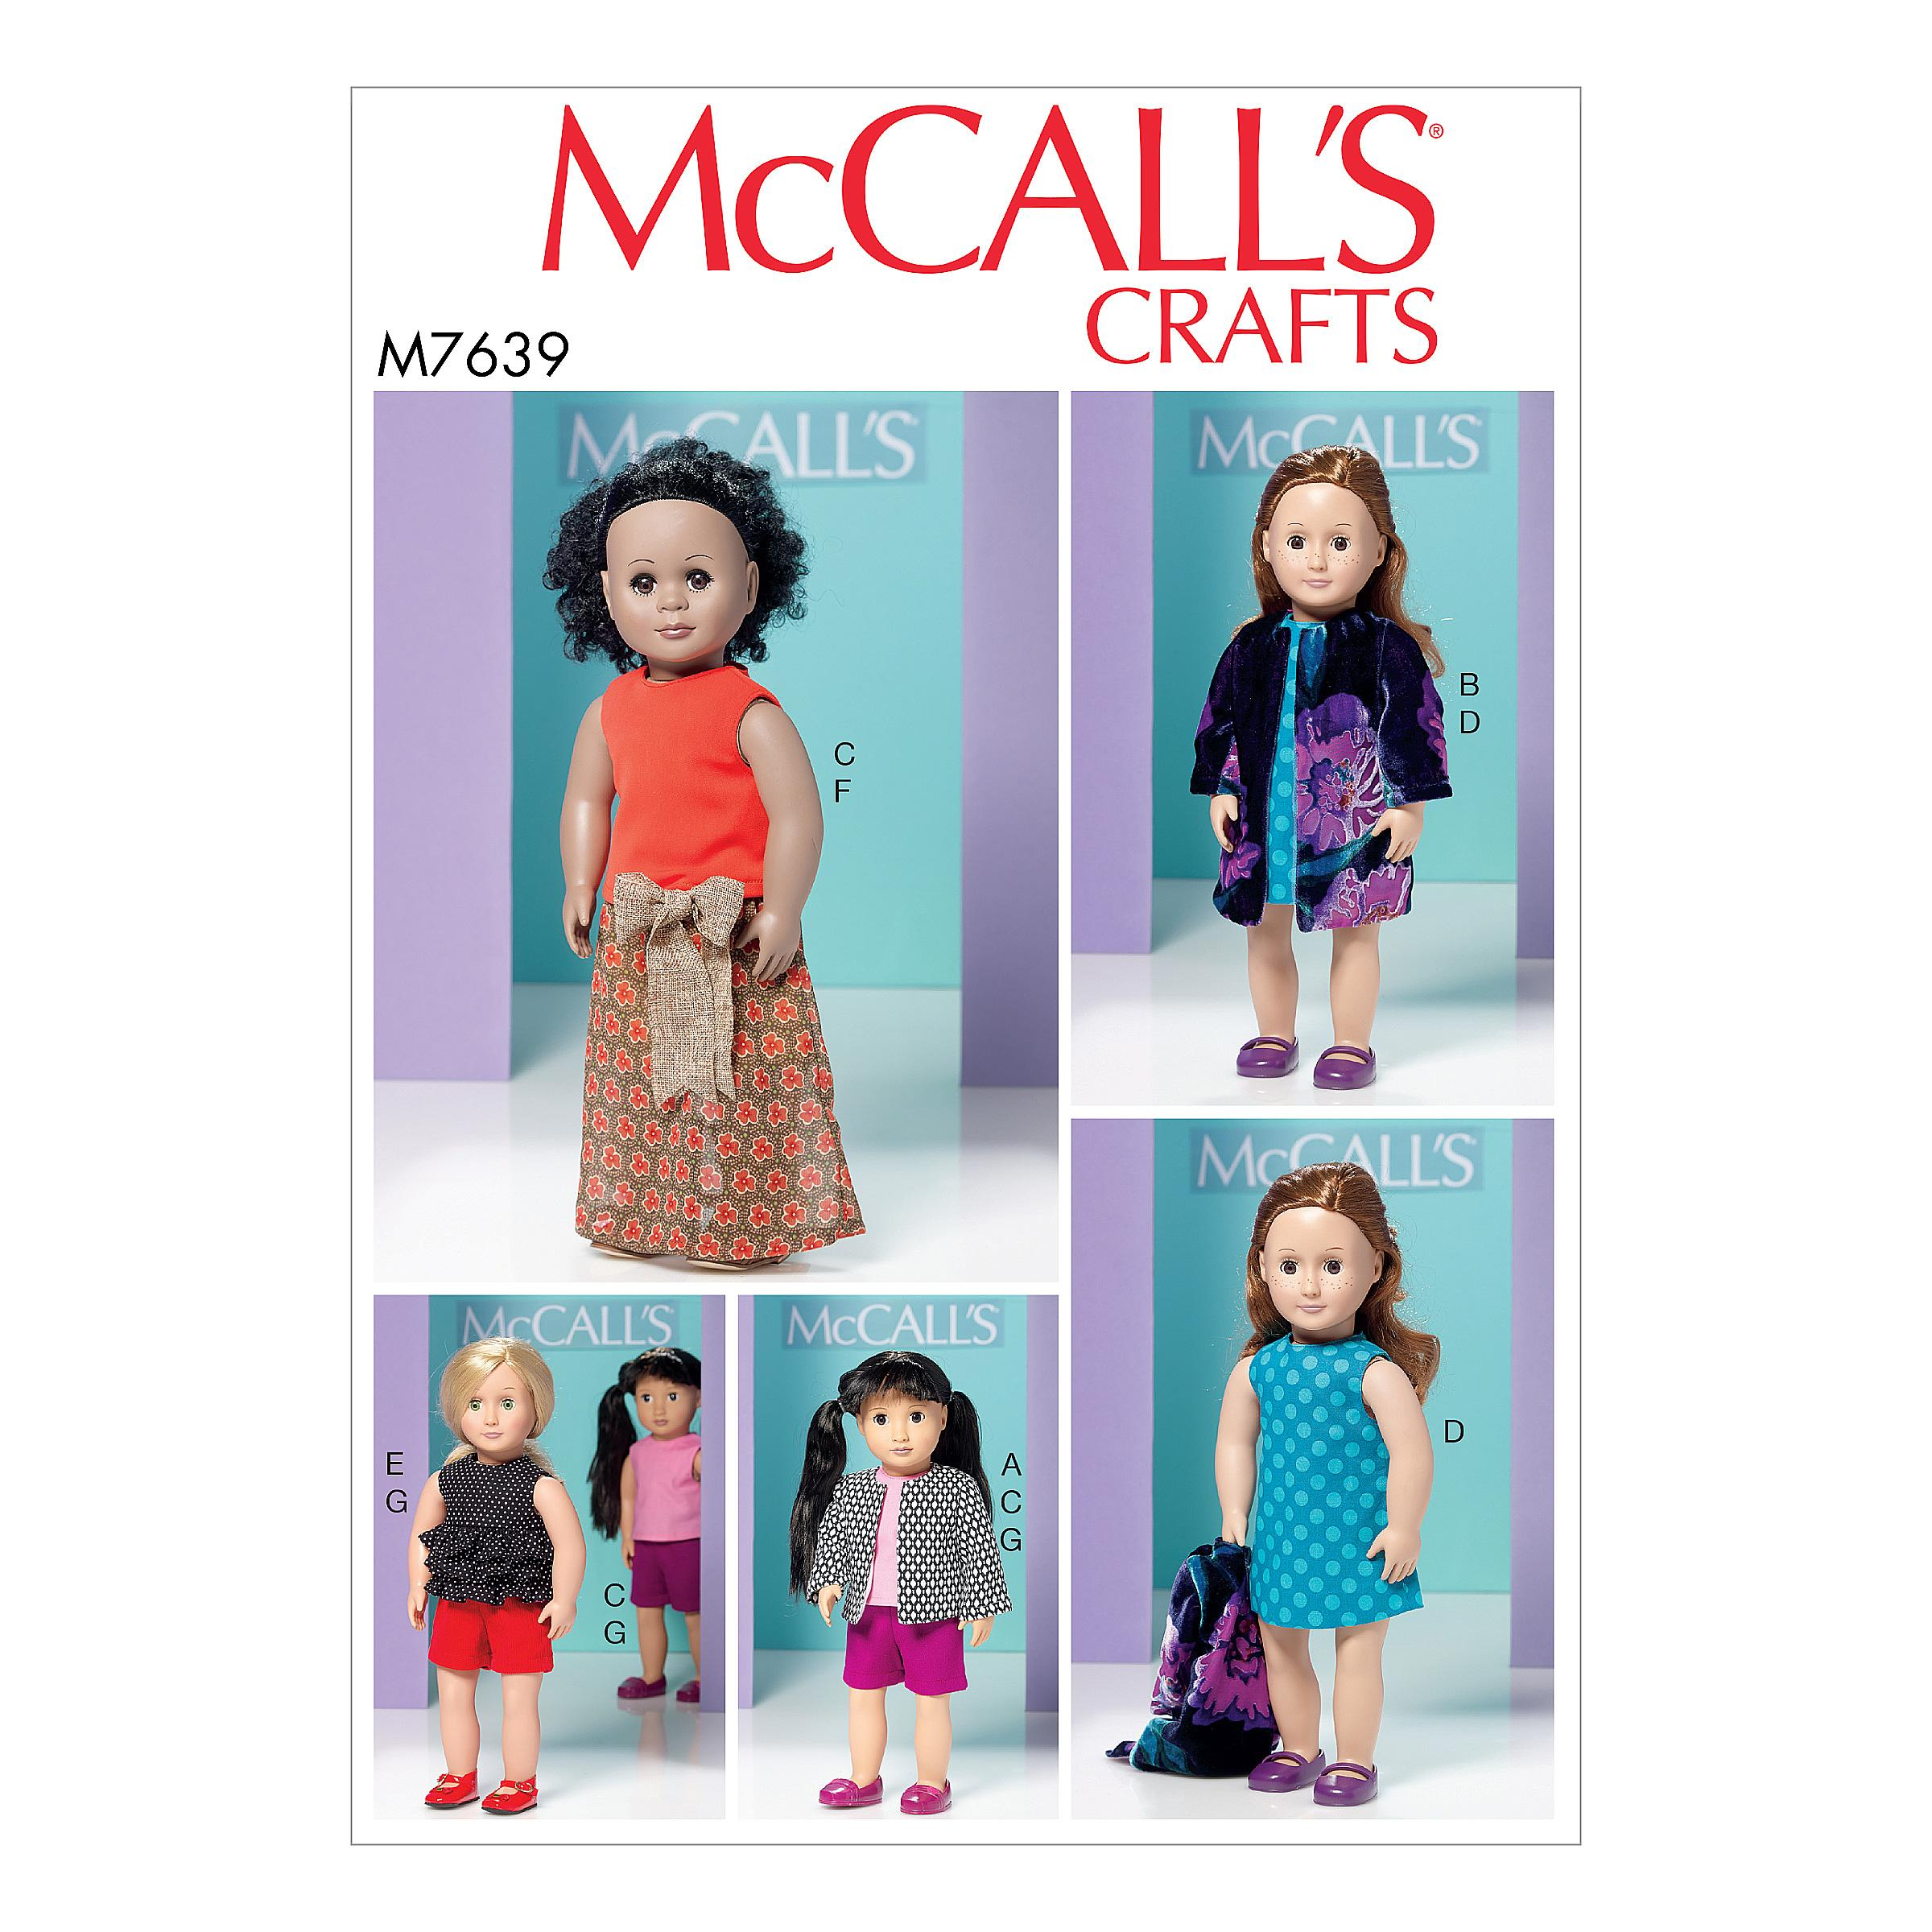 McCalls M7639 Crafts Dolls & Toys